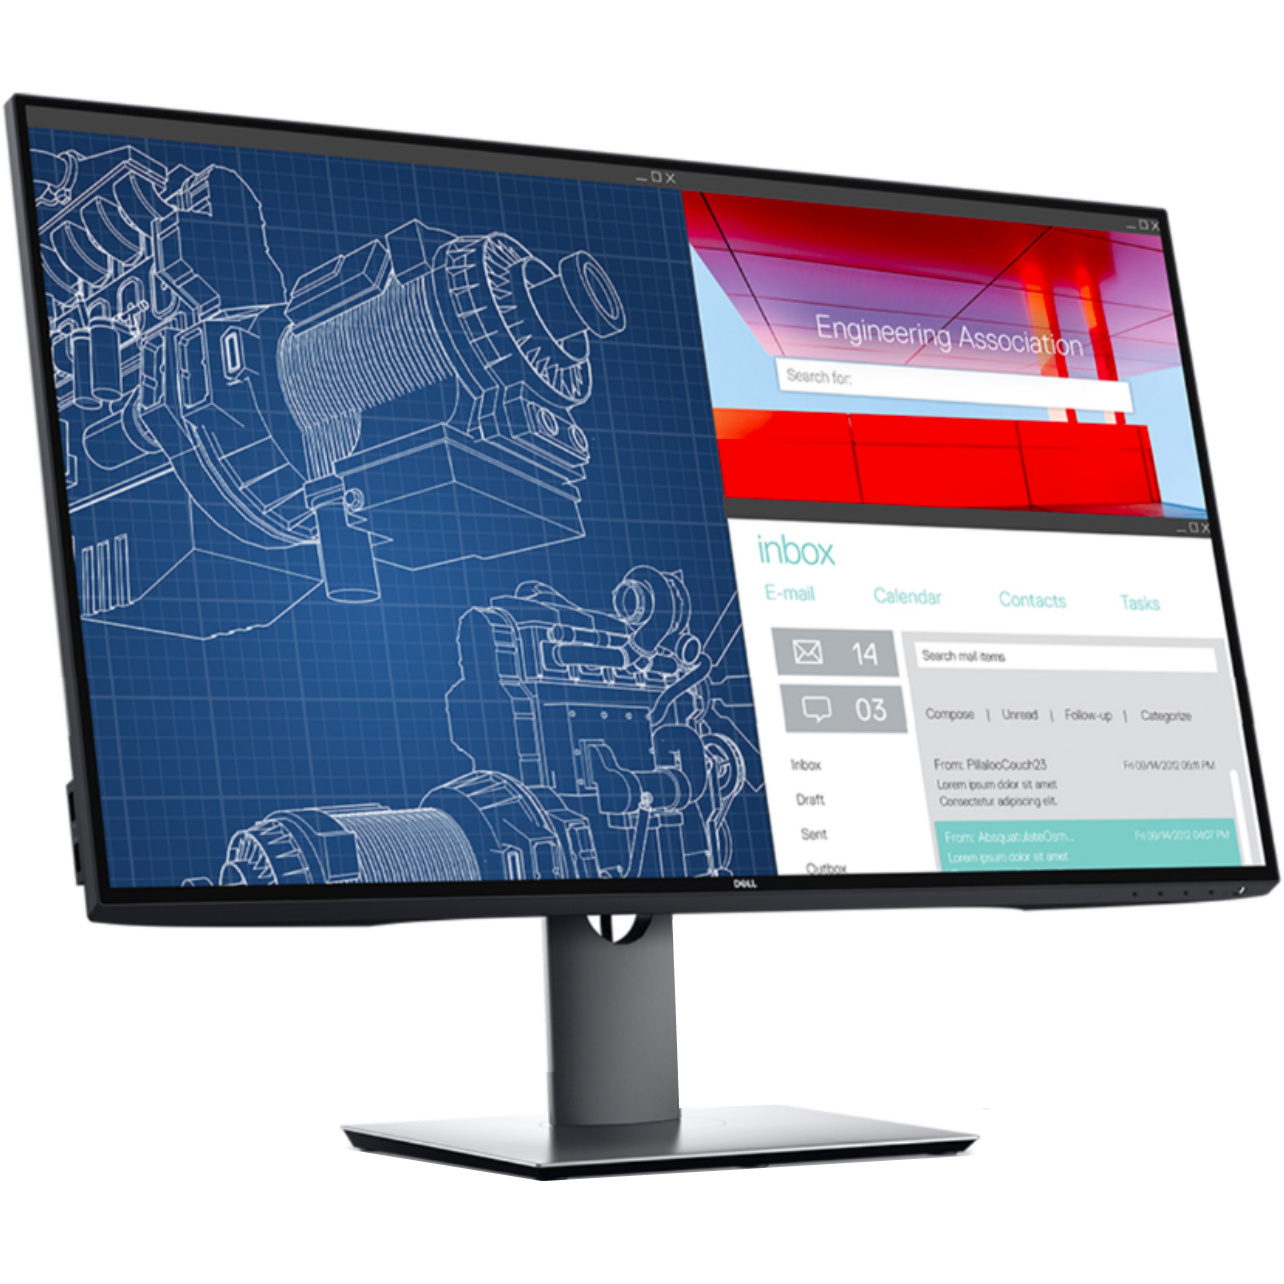 Using USB-C to plug a laptop into the monitor